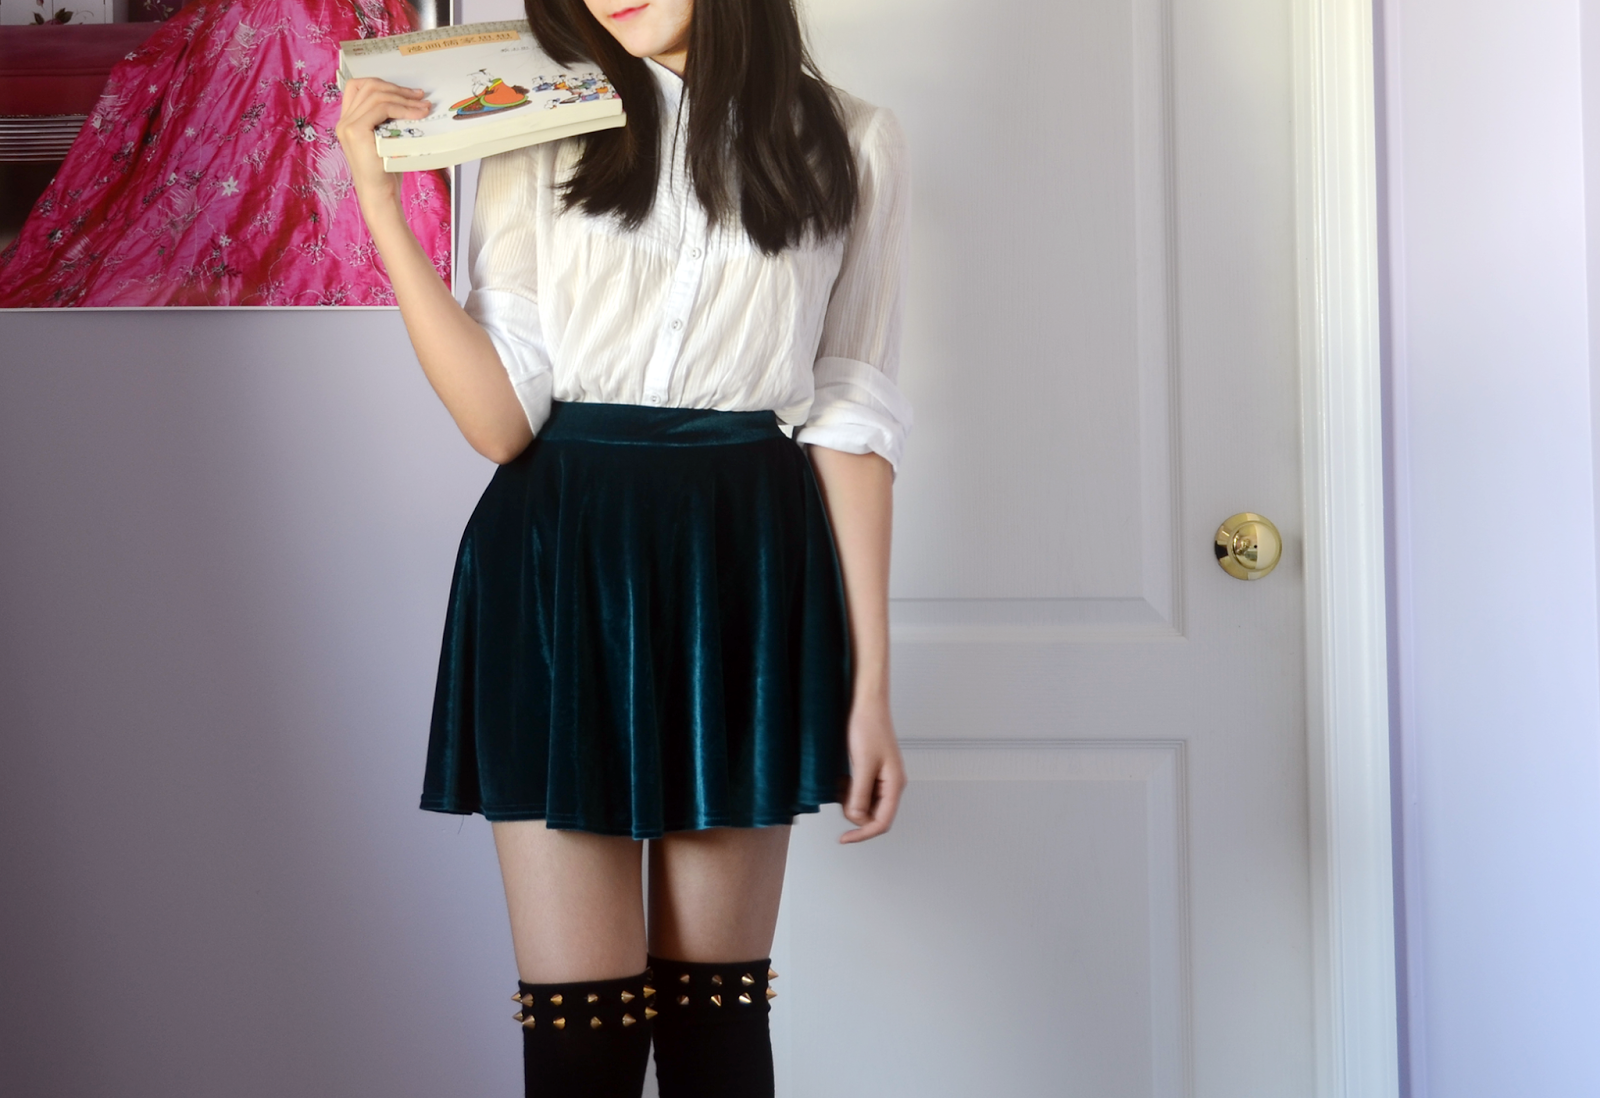 Grungy, preppy twist on a school uniform with spiked knee socks and velvet